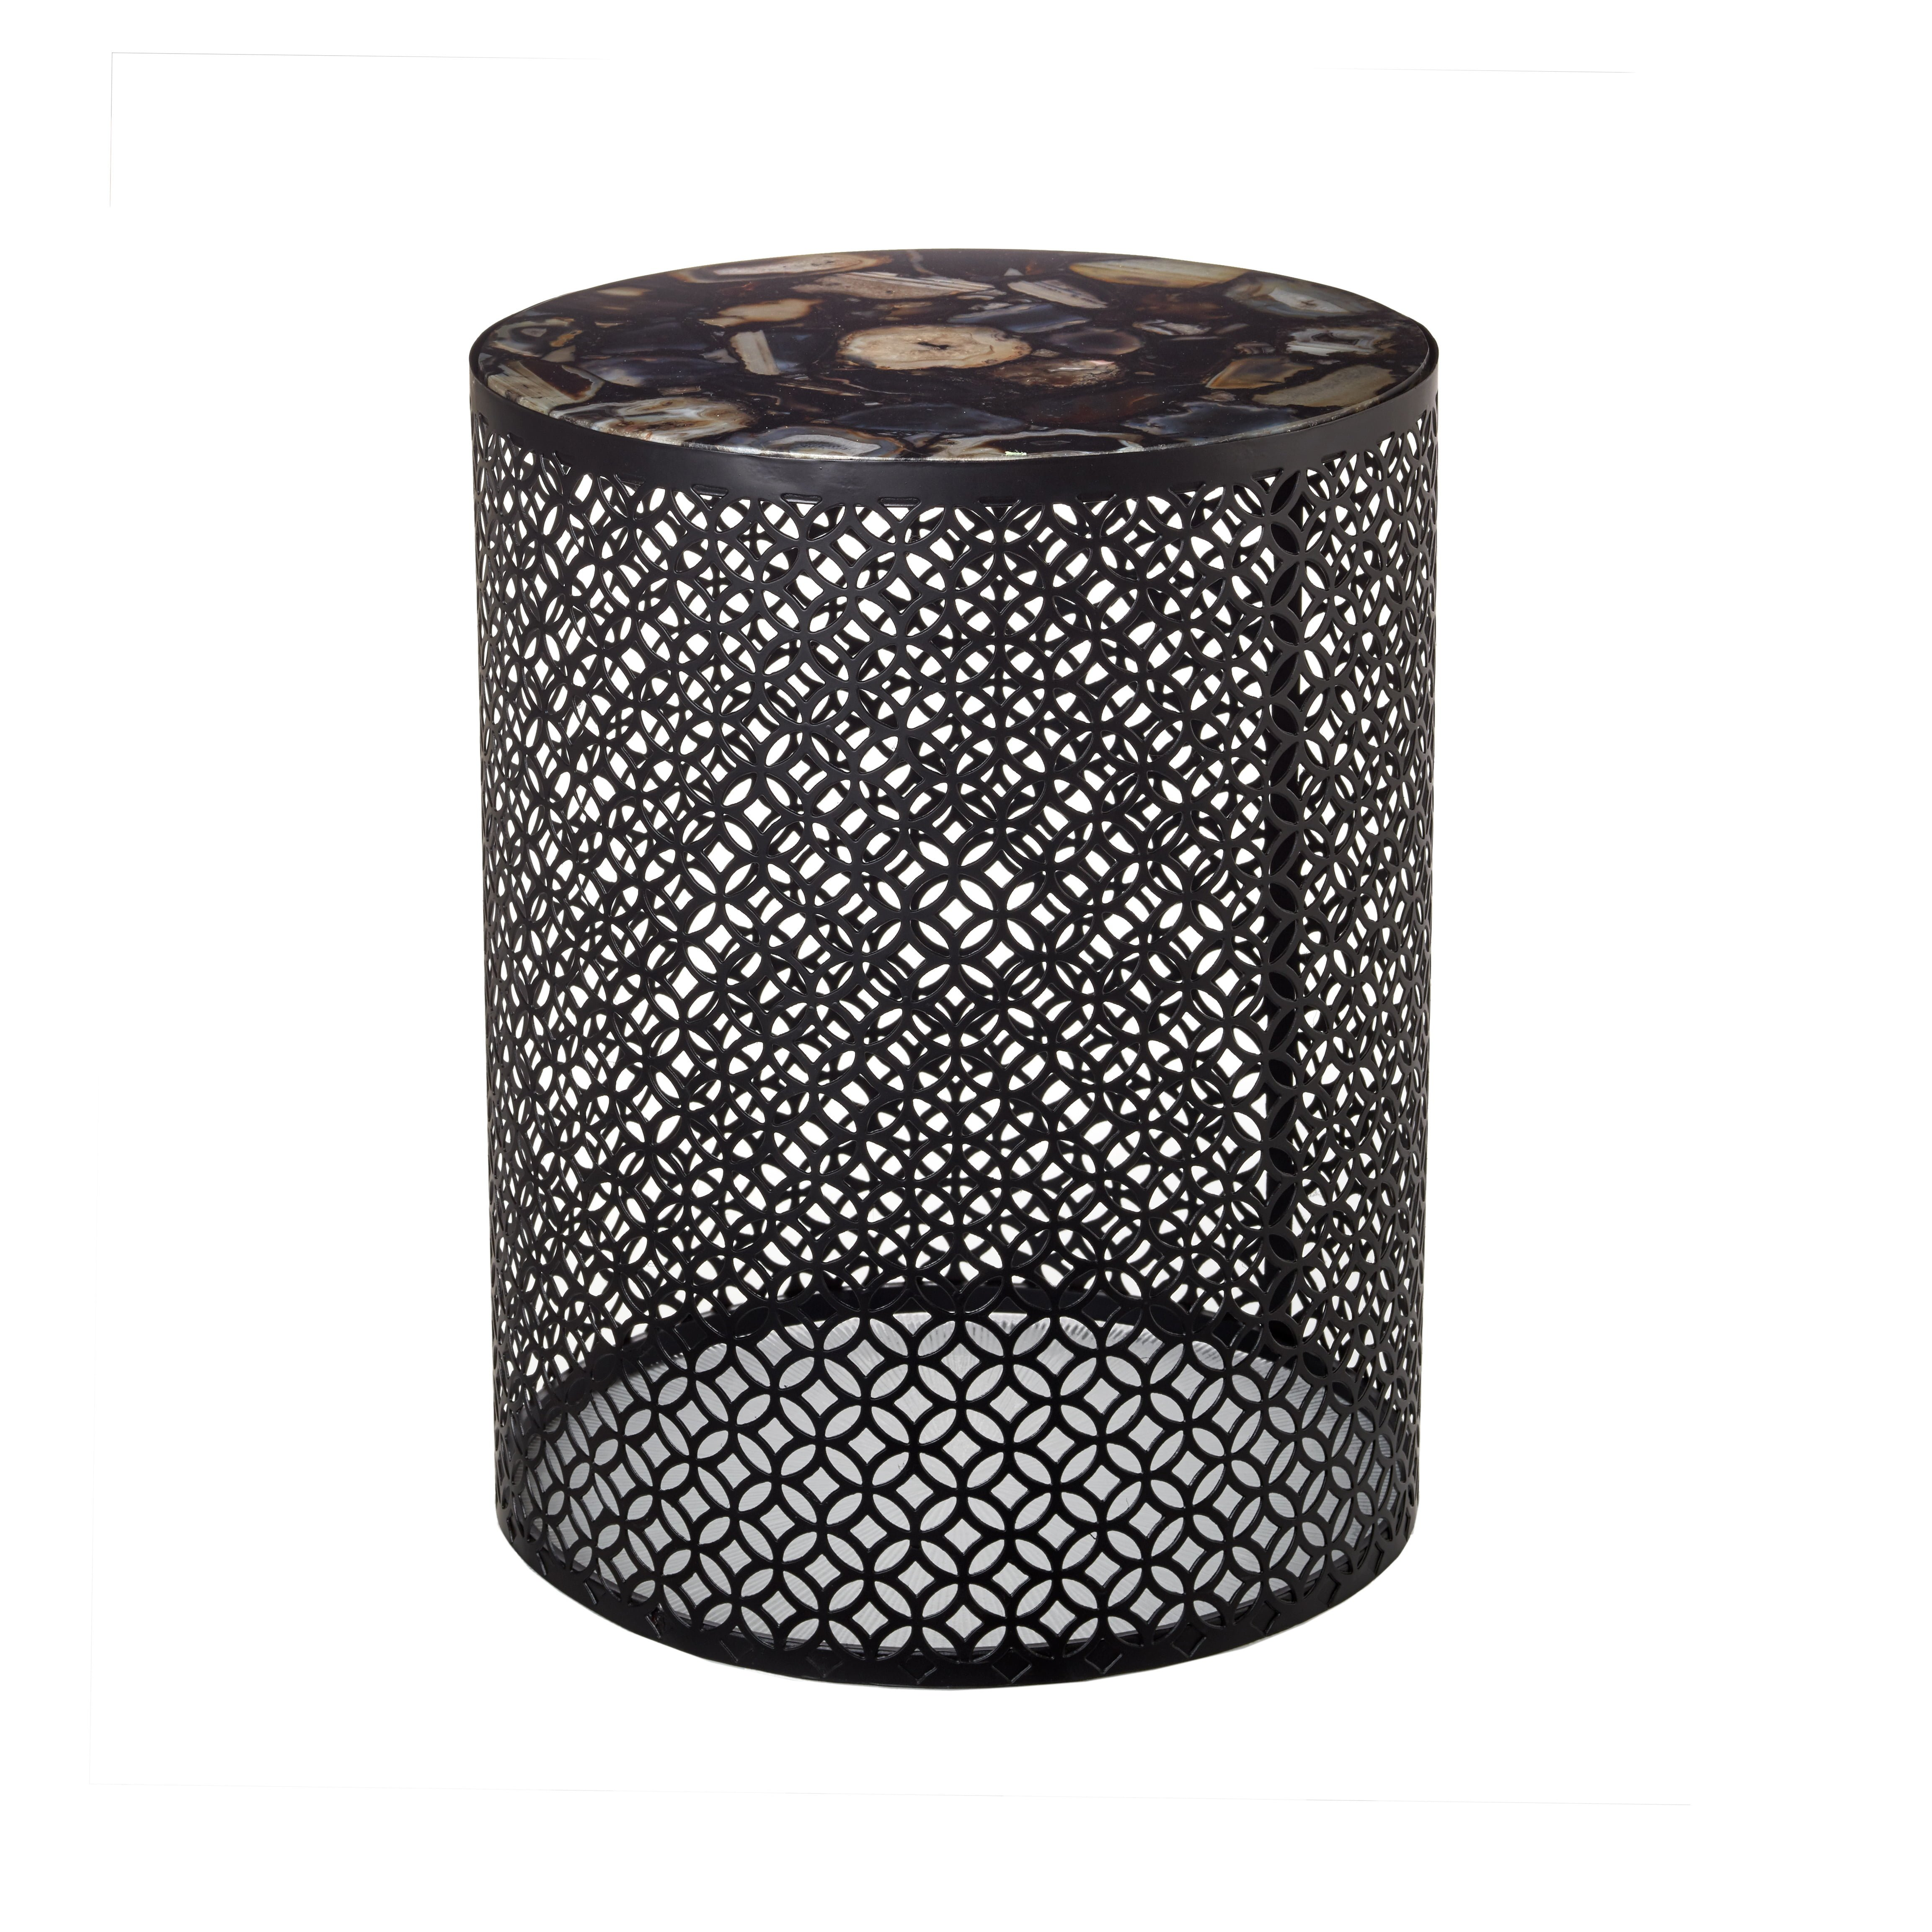 Exquisite round side table with black metal base and decorative agate stone top